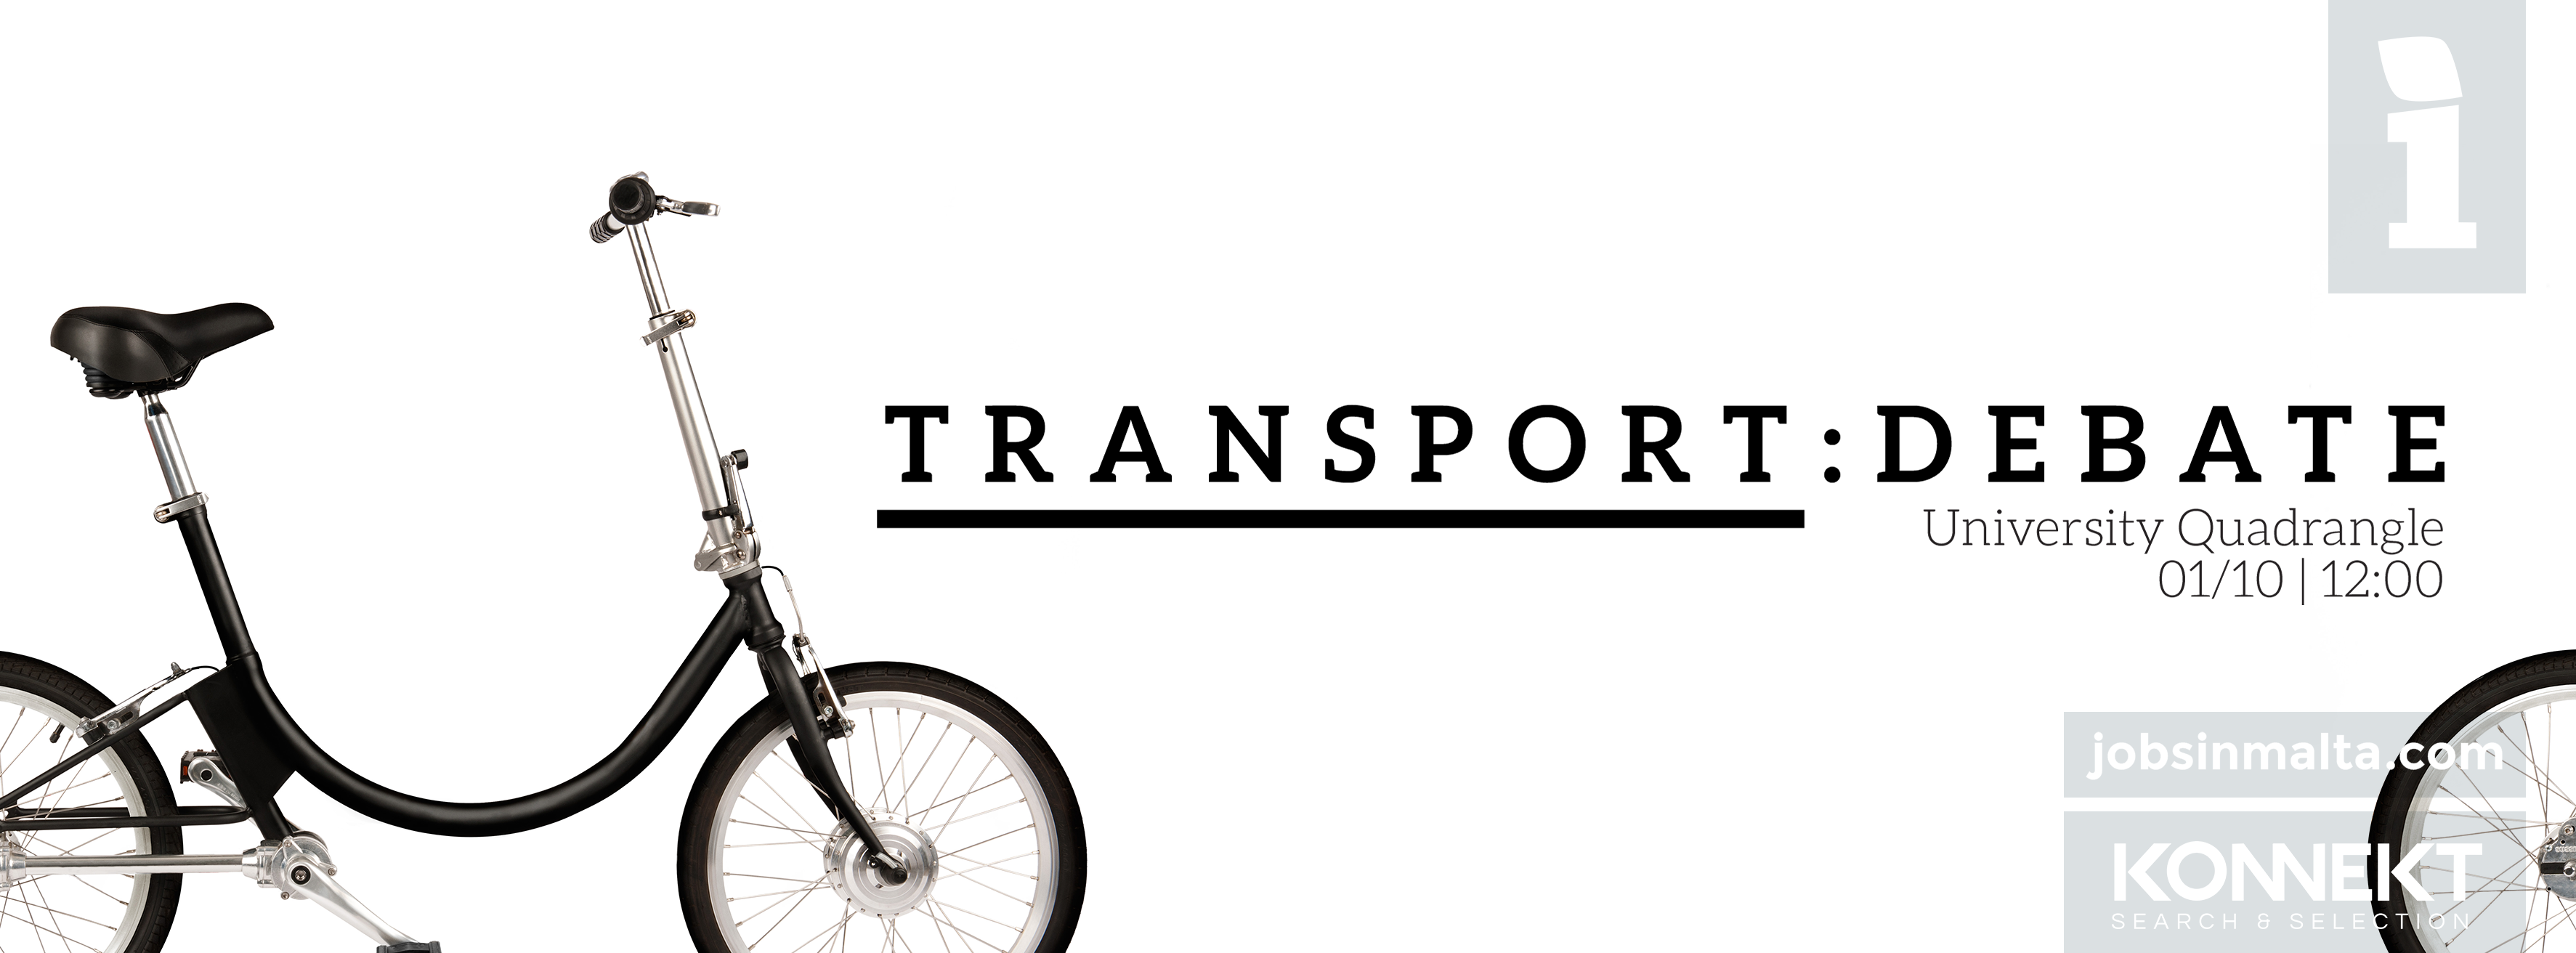 The Insite Transport Debate